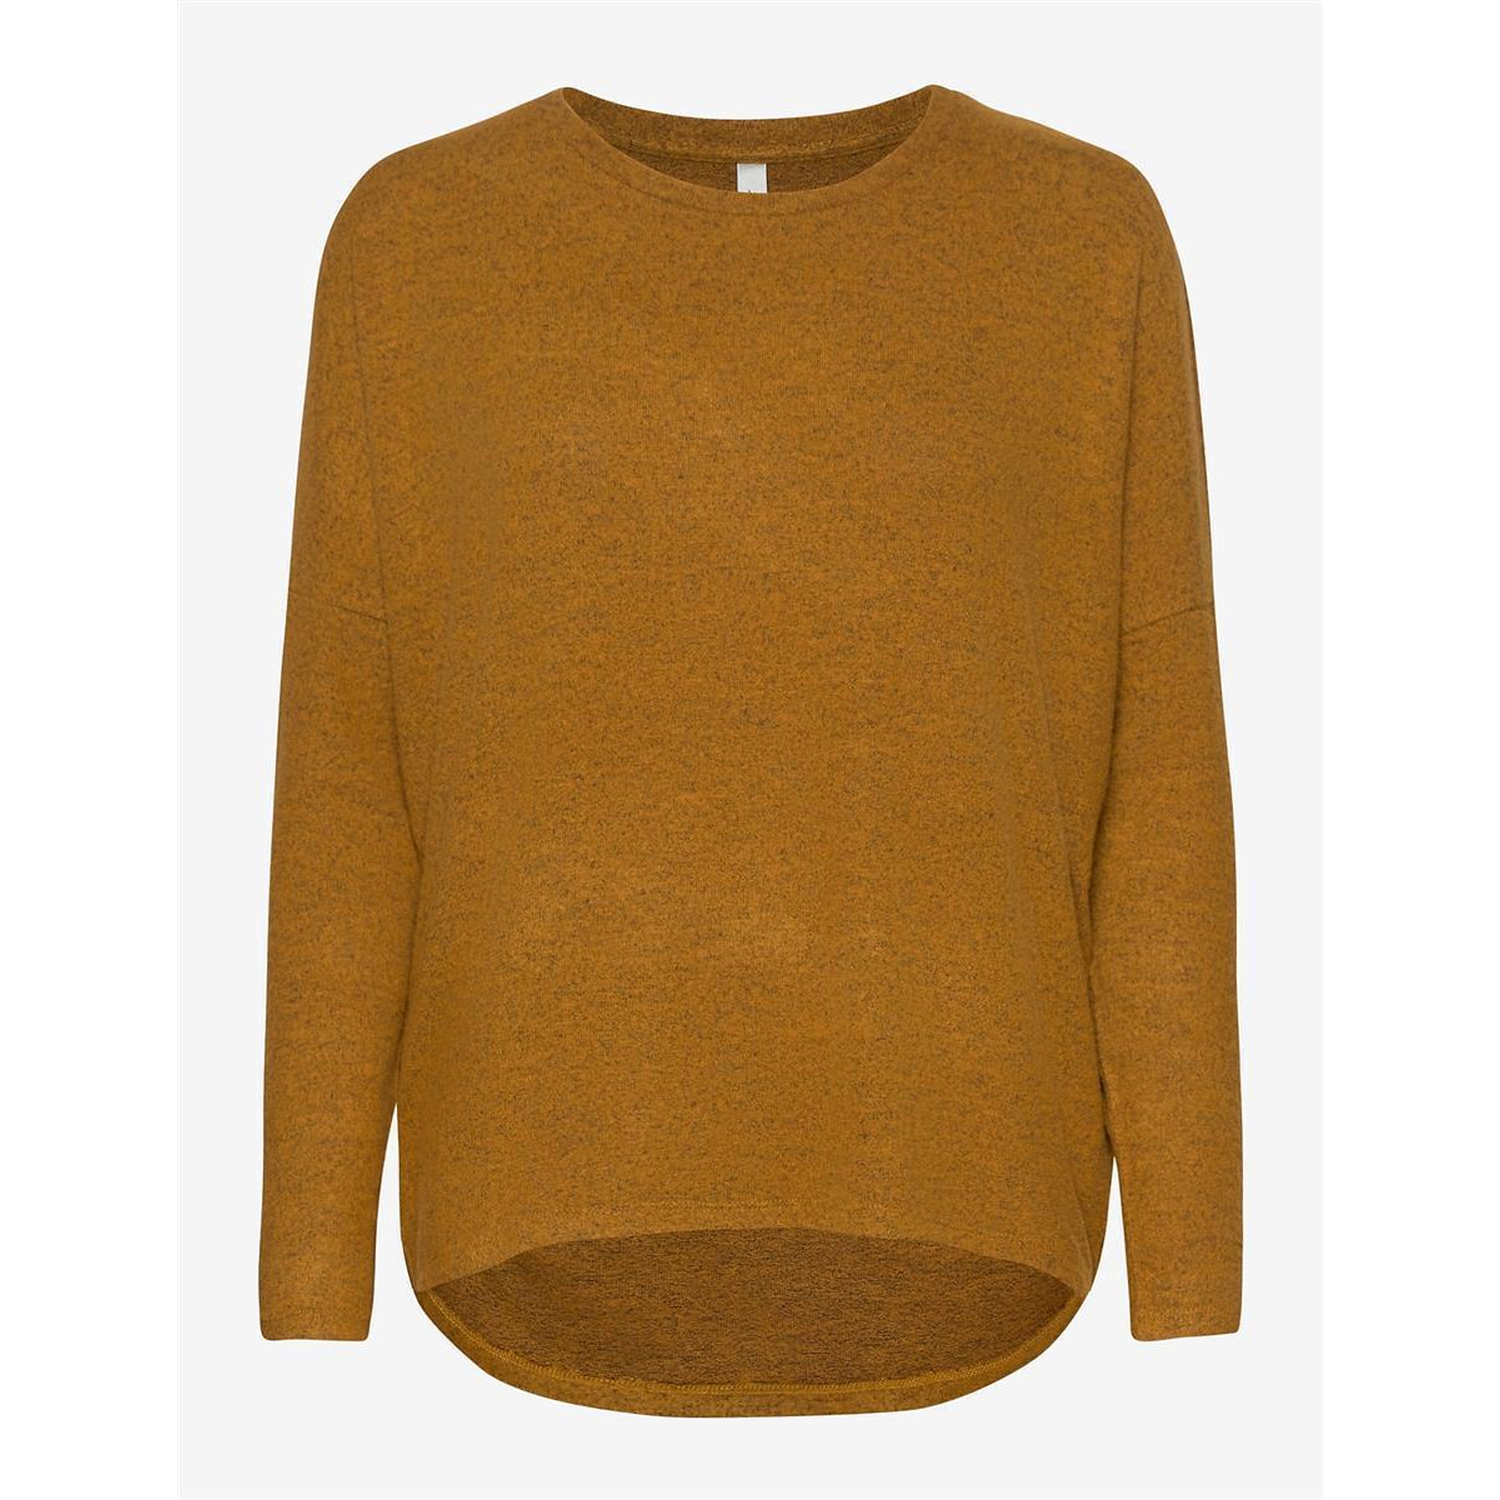 SOYACONCEPT Shirt oversized golden melange